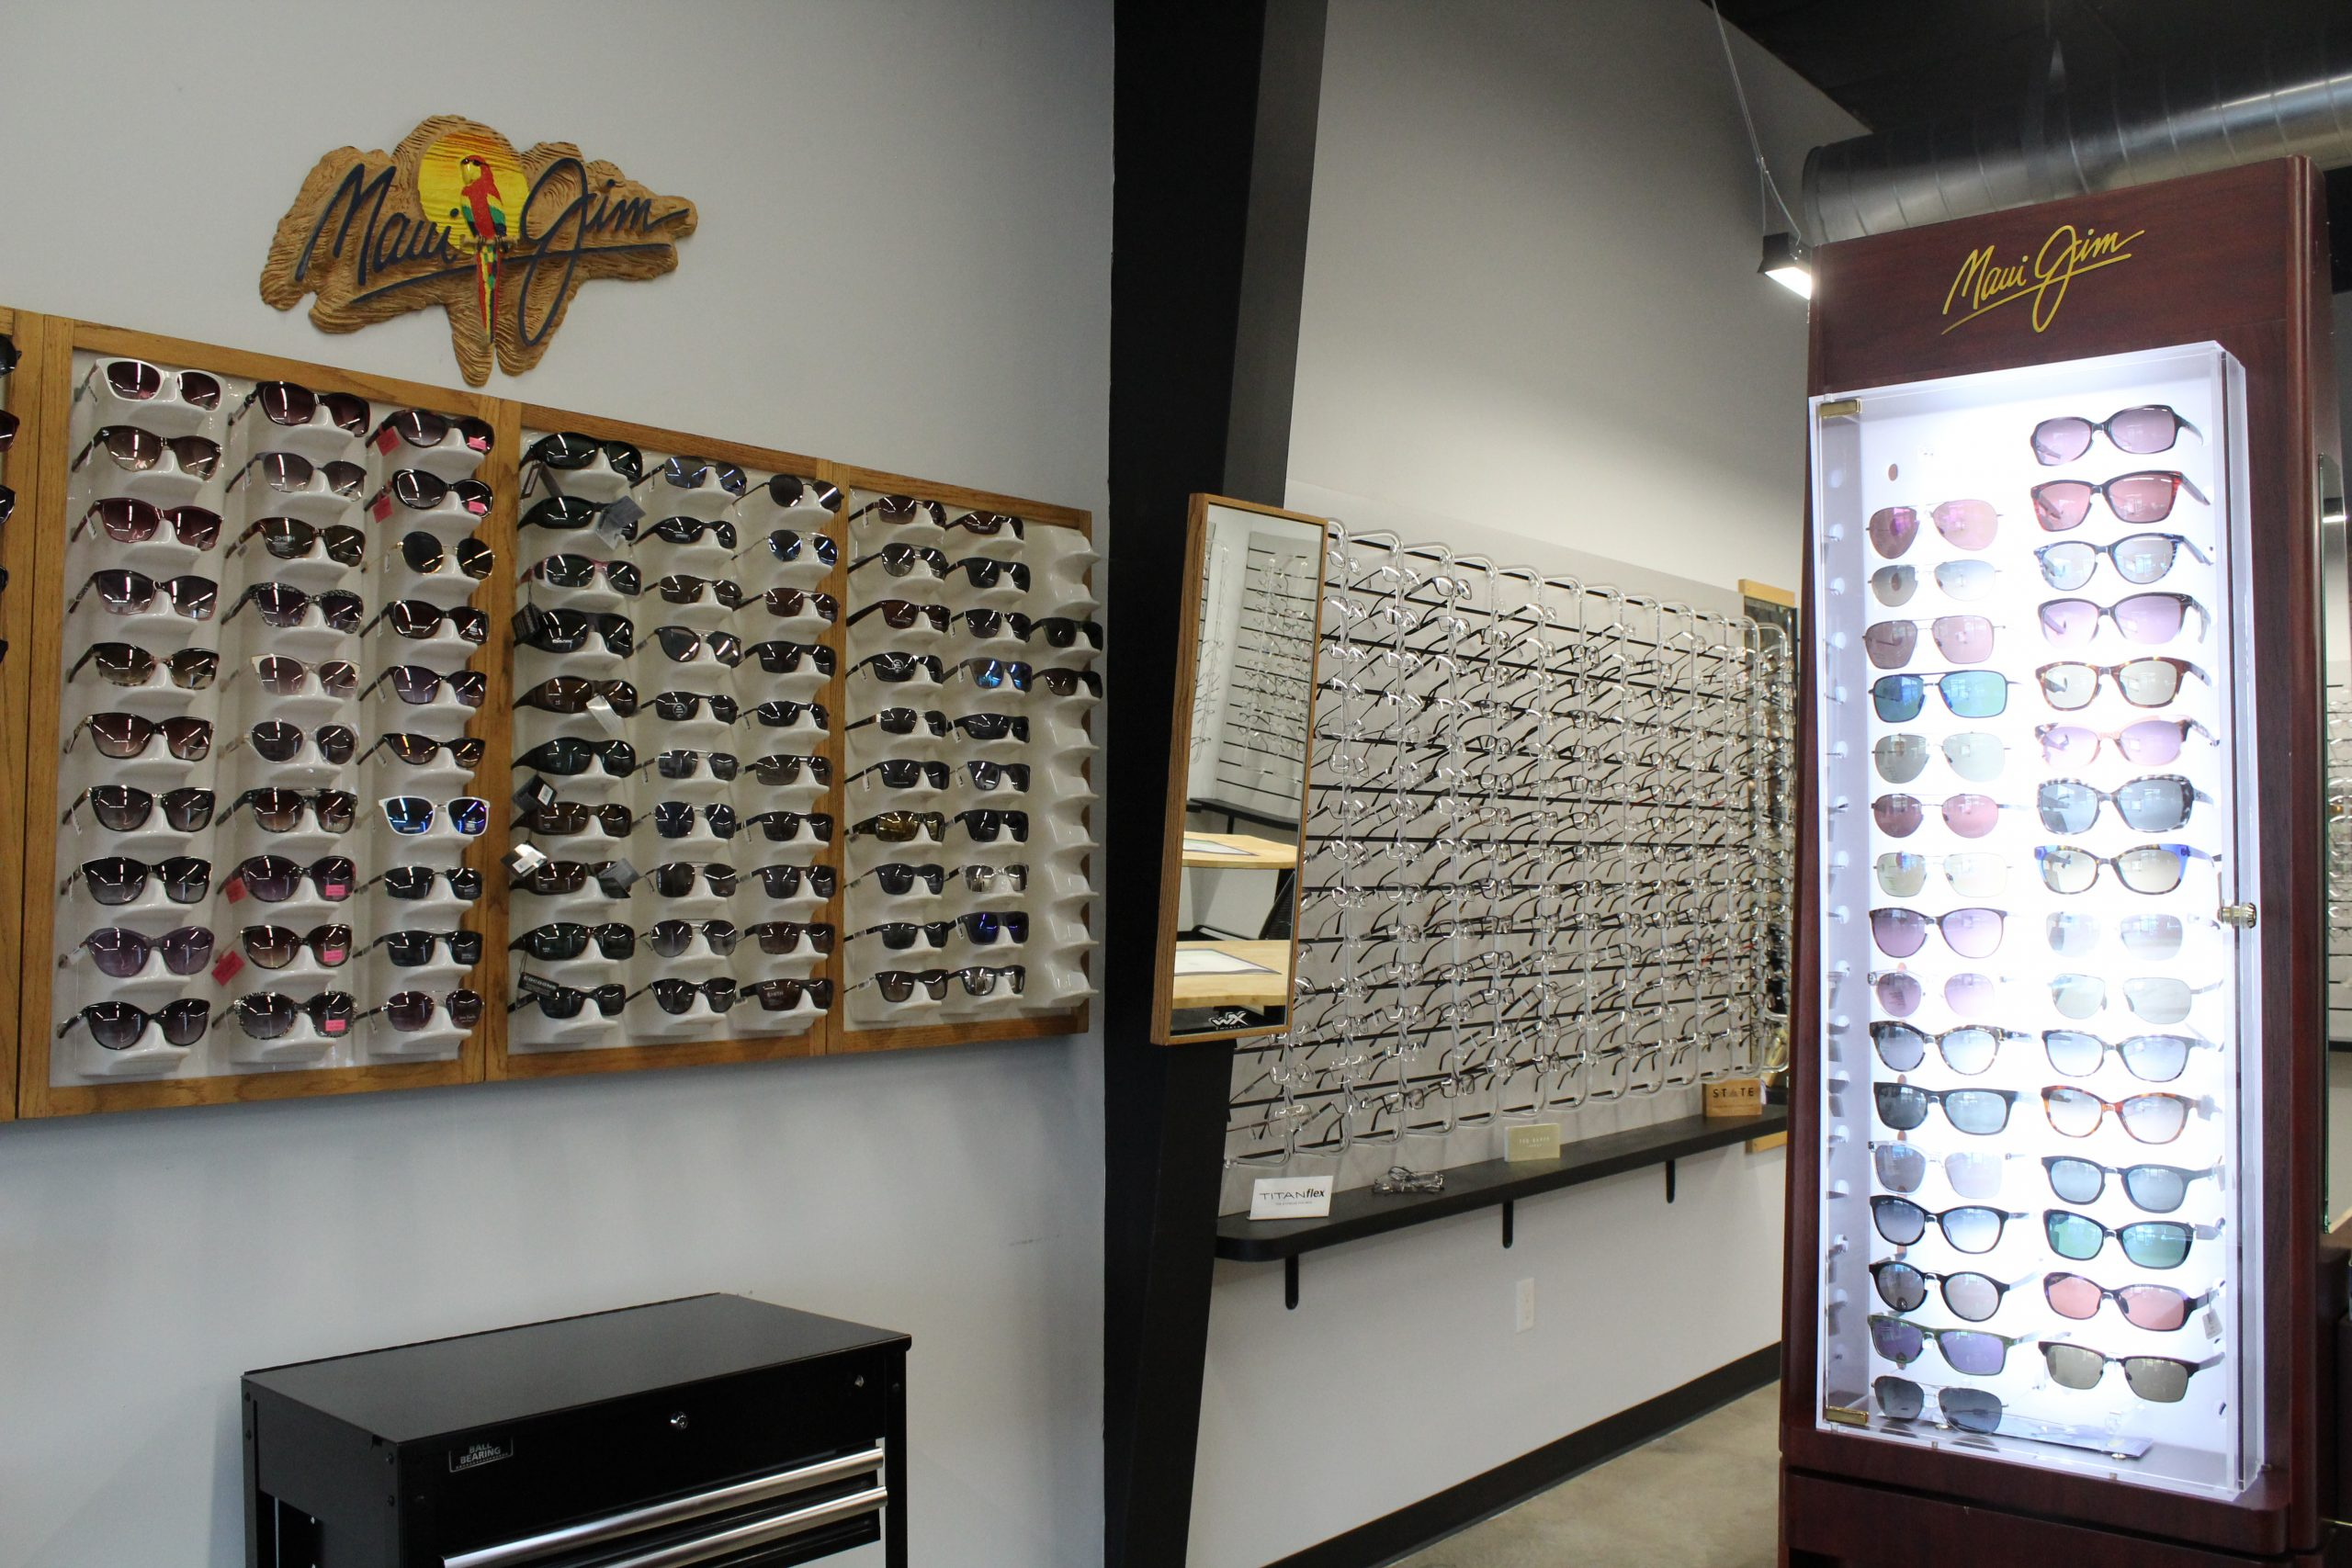 Baker Eye Care lobby displaying the Maui Jim Sunglasses they carry